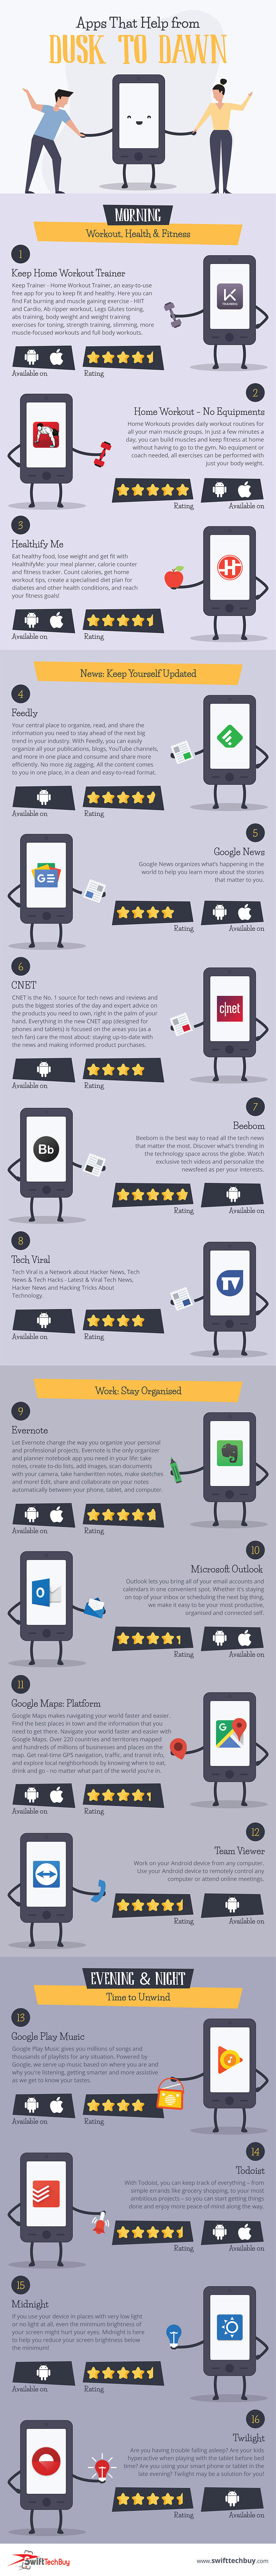 Apps that Help from Dusk to Dawn infographic